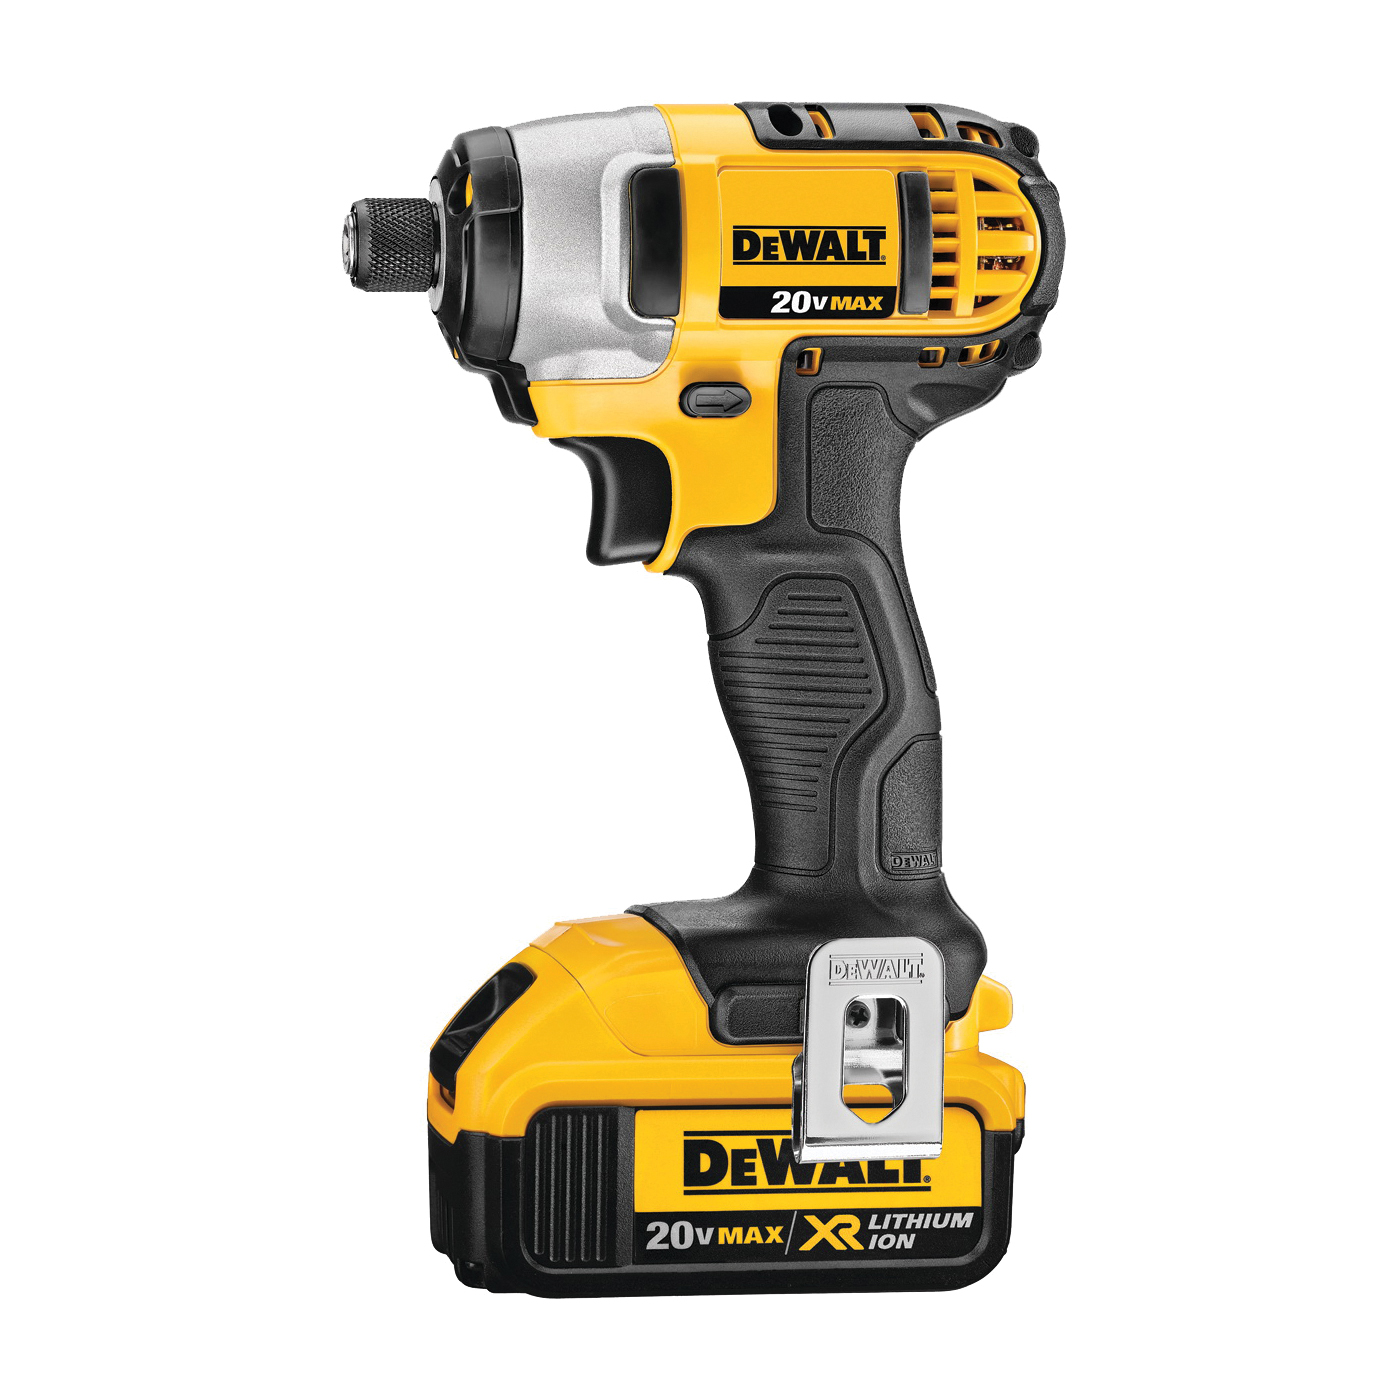 Picture of DeWALT DCF885M2 Impact Driver Kit, Kit, 20 V Battery, 4 Ah, 1/4 in Drive, Hex Drive, 3200 ipm IPM, 2800 rpm Speed